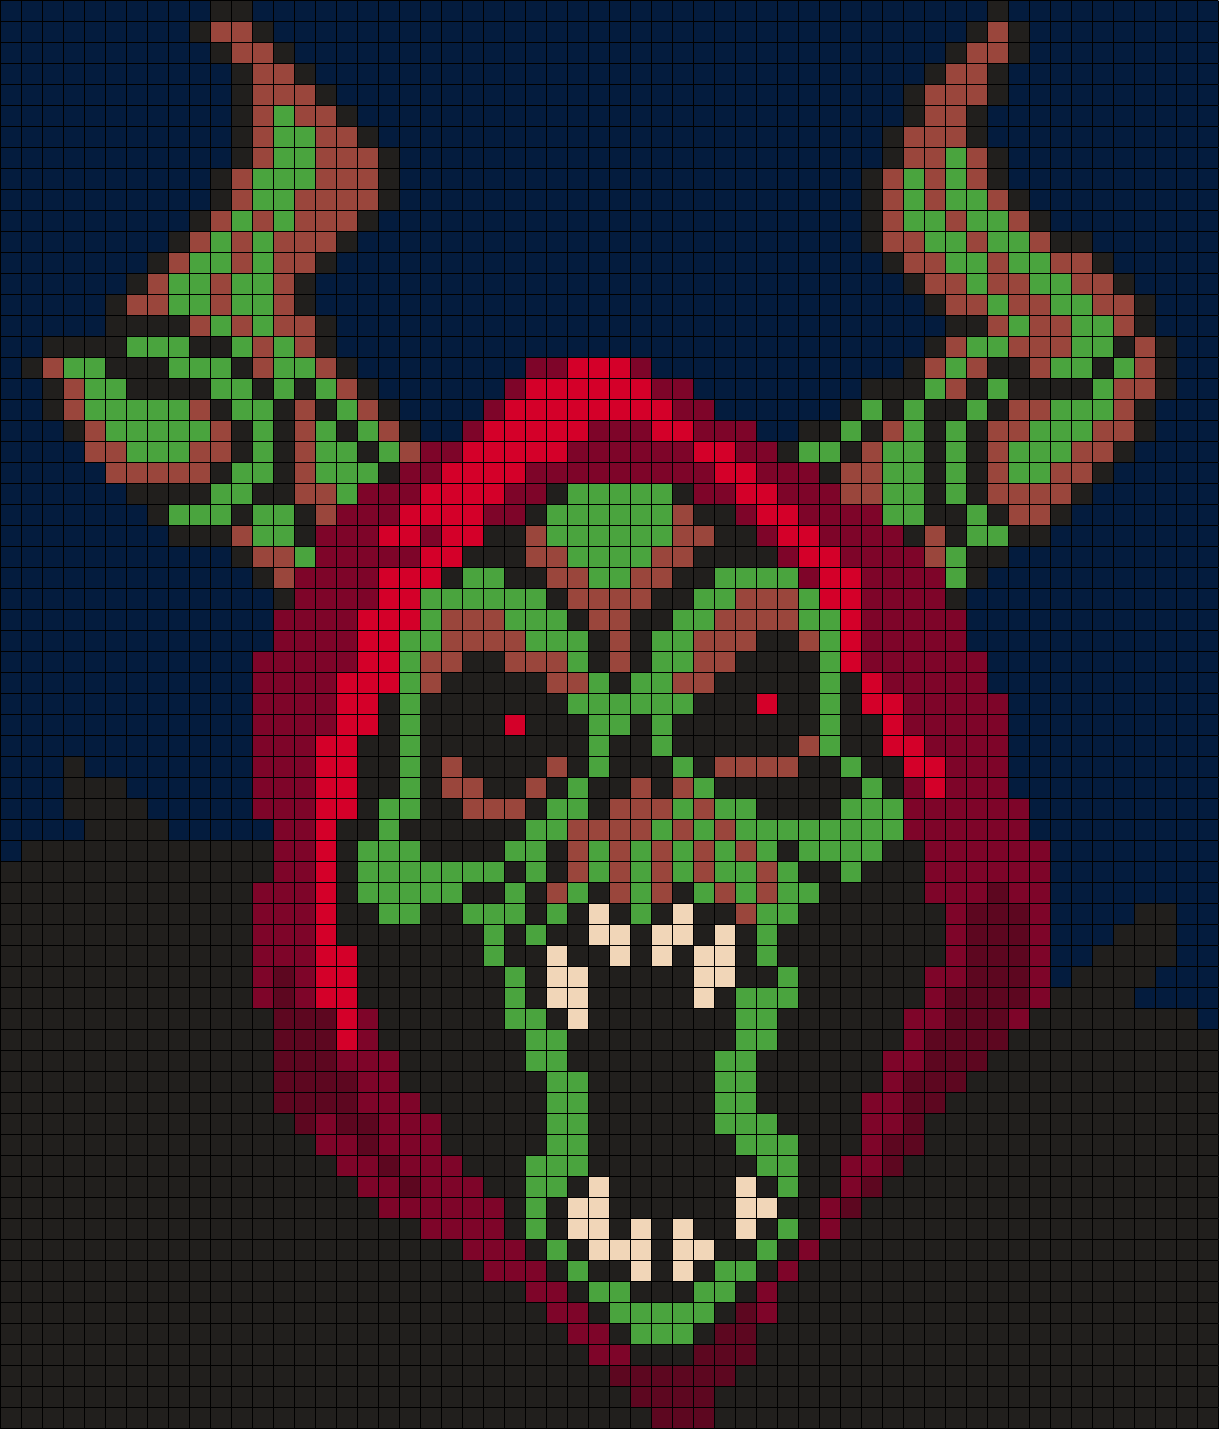 The Horn King from The Black Cauldron (Square Grid Pattern 58 X 68)